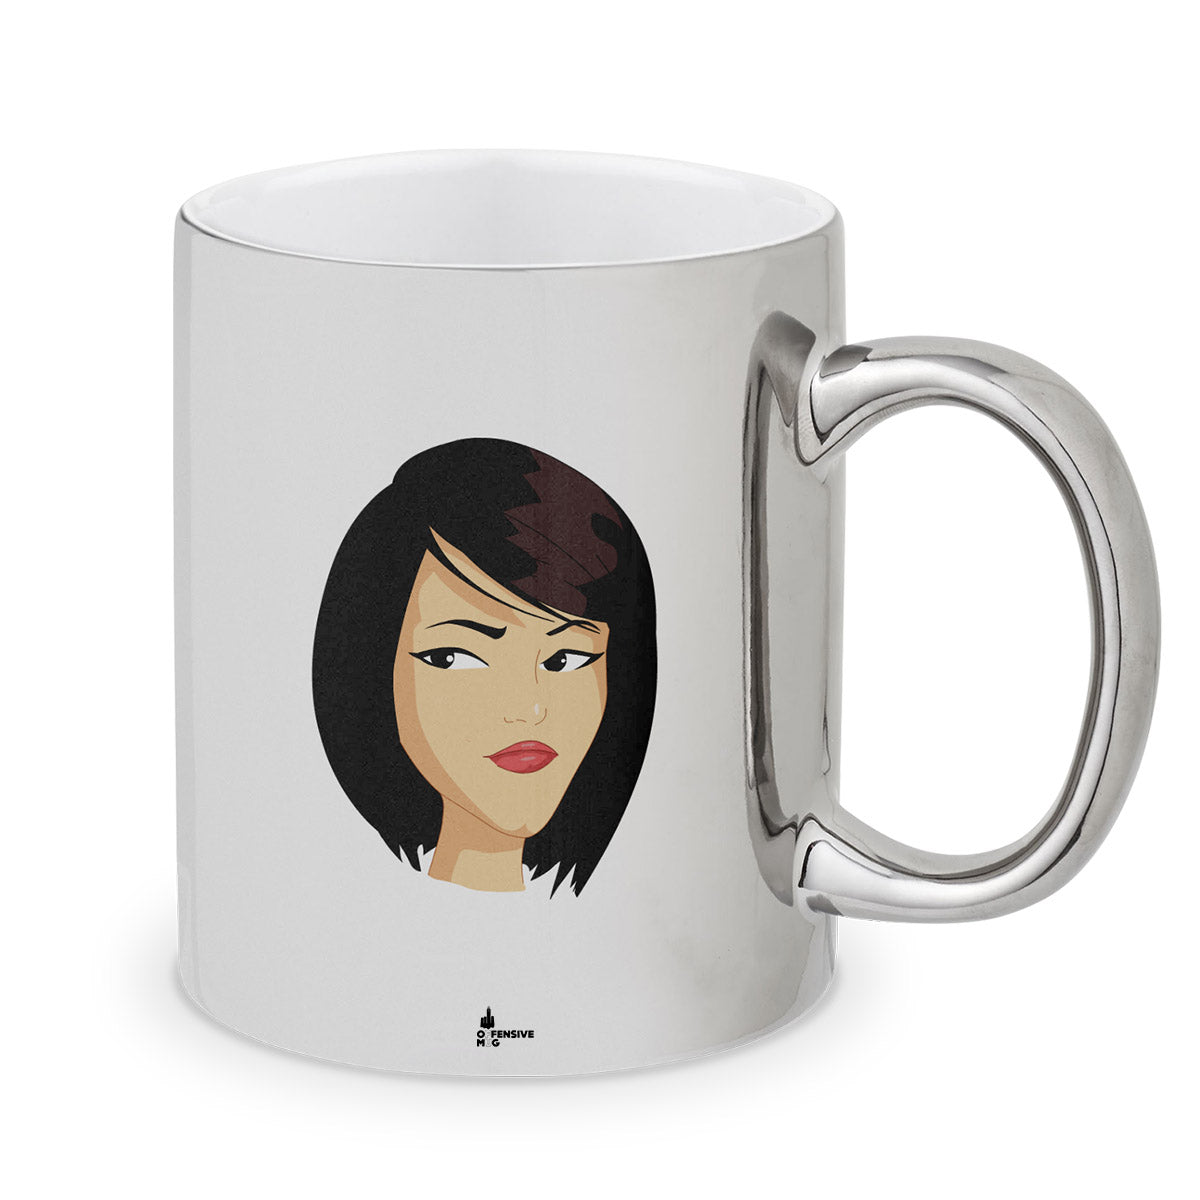 Soo Metal Plated Mug - Offensive Mug